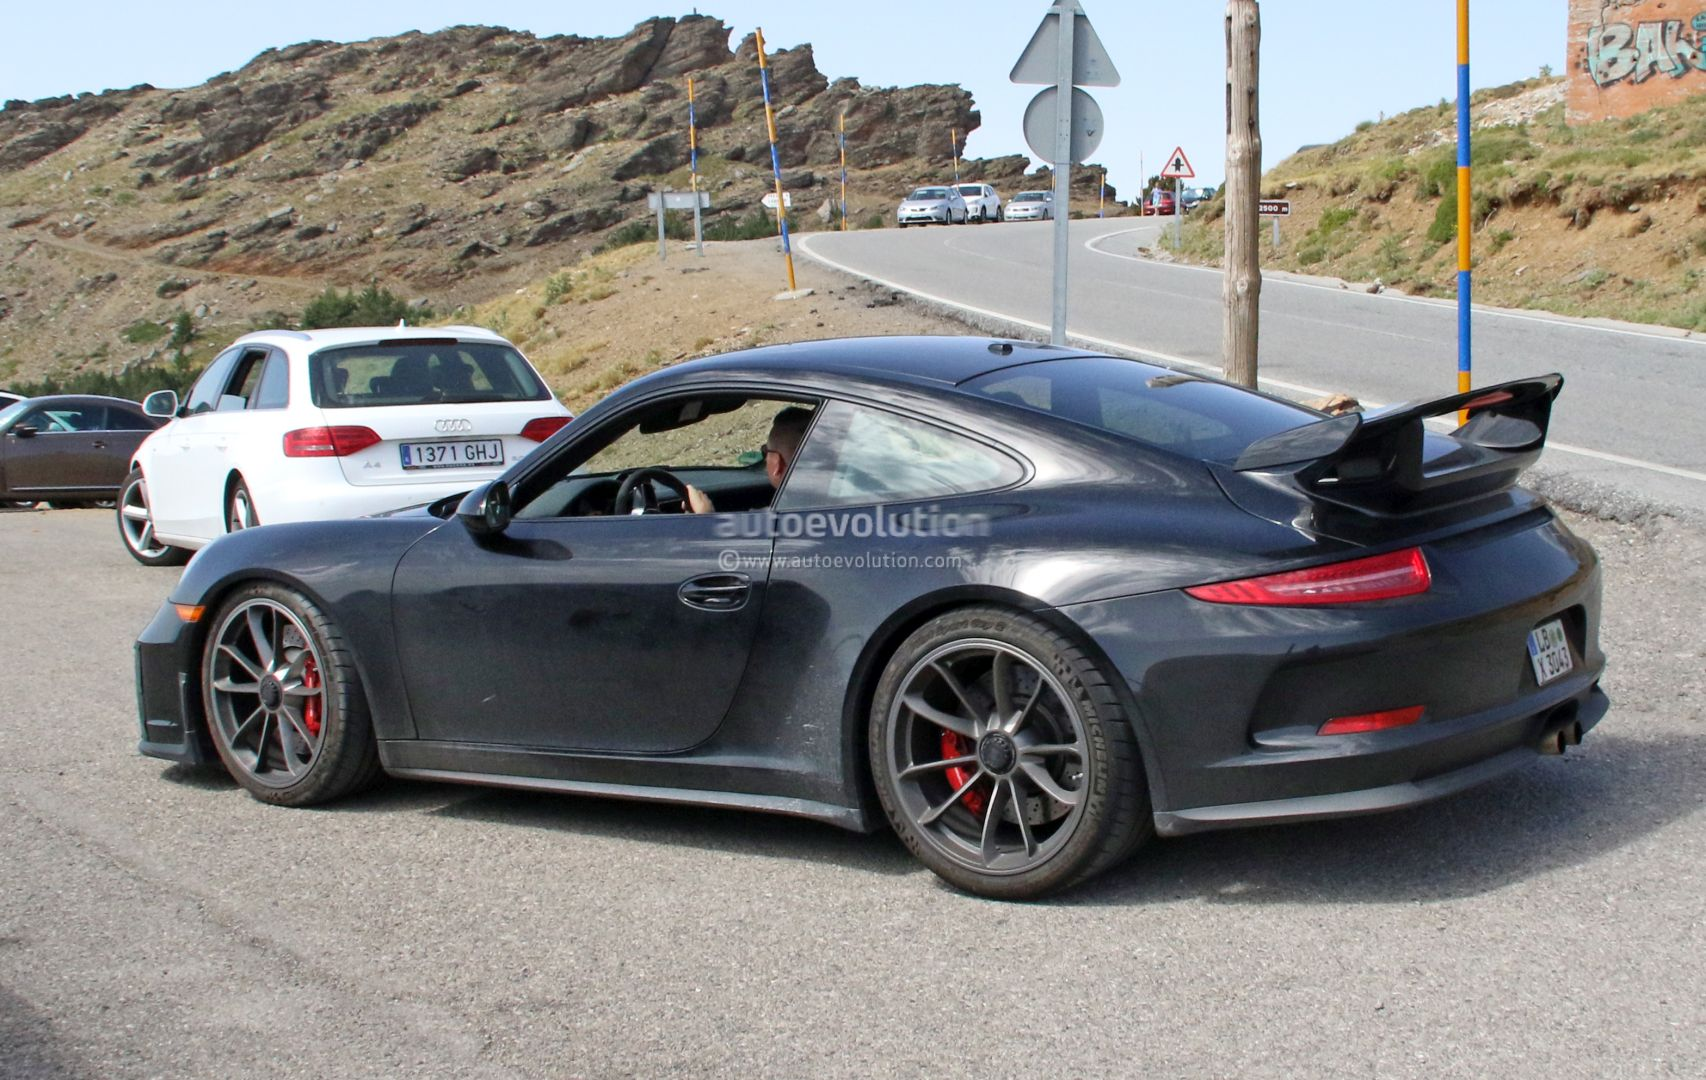 Manual Gearbox 2017 Porsche 911 GT3 (991.2) Spied with Hilarious ...